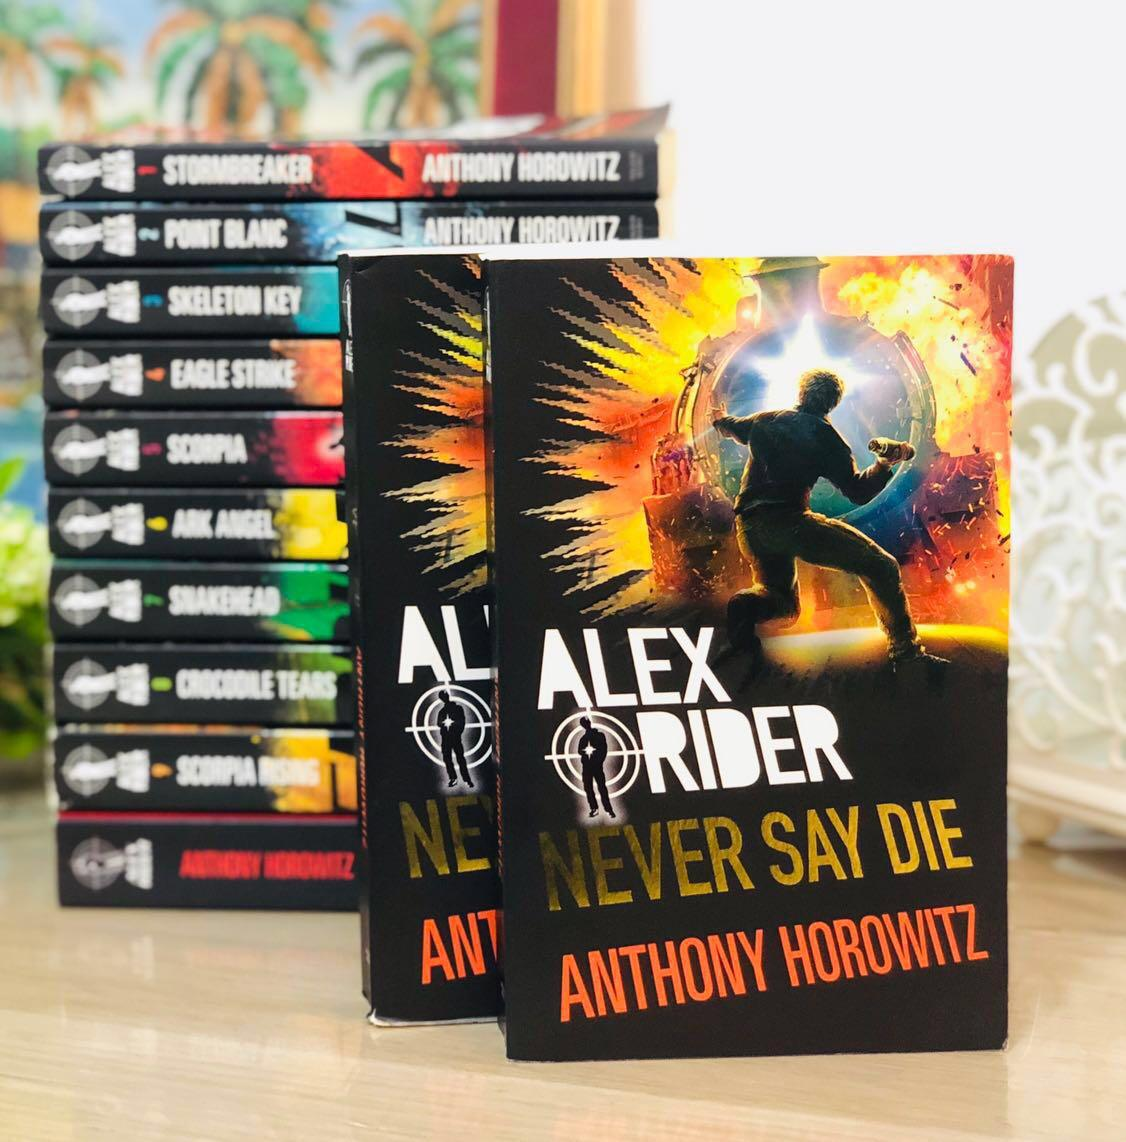 Alex Rider Never Say Die By Anthony Horowitz Books Stationery Children S Books On Carousell